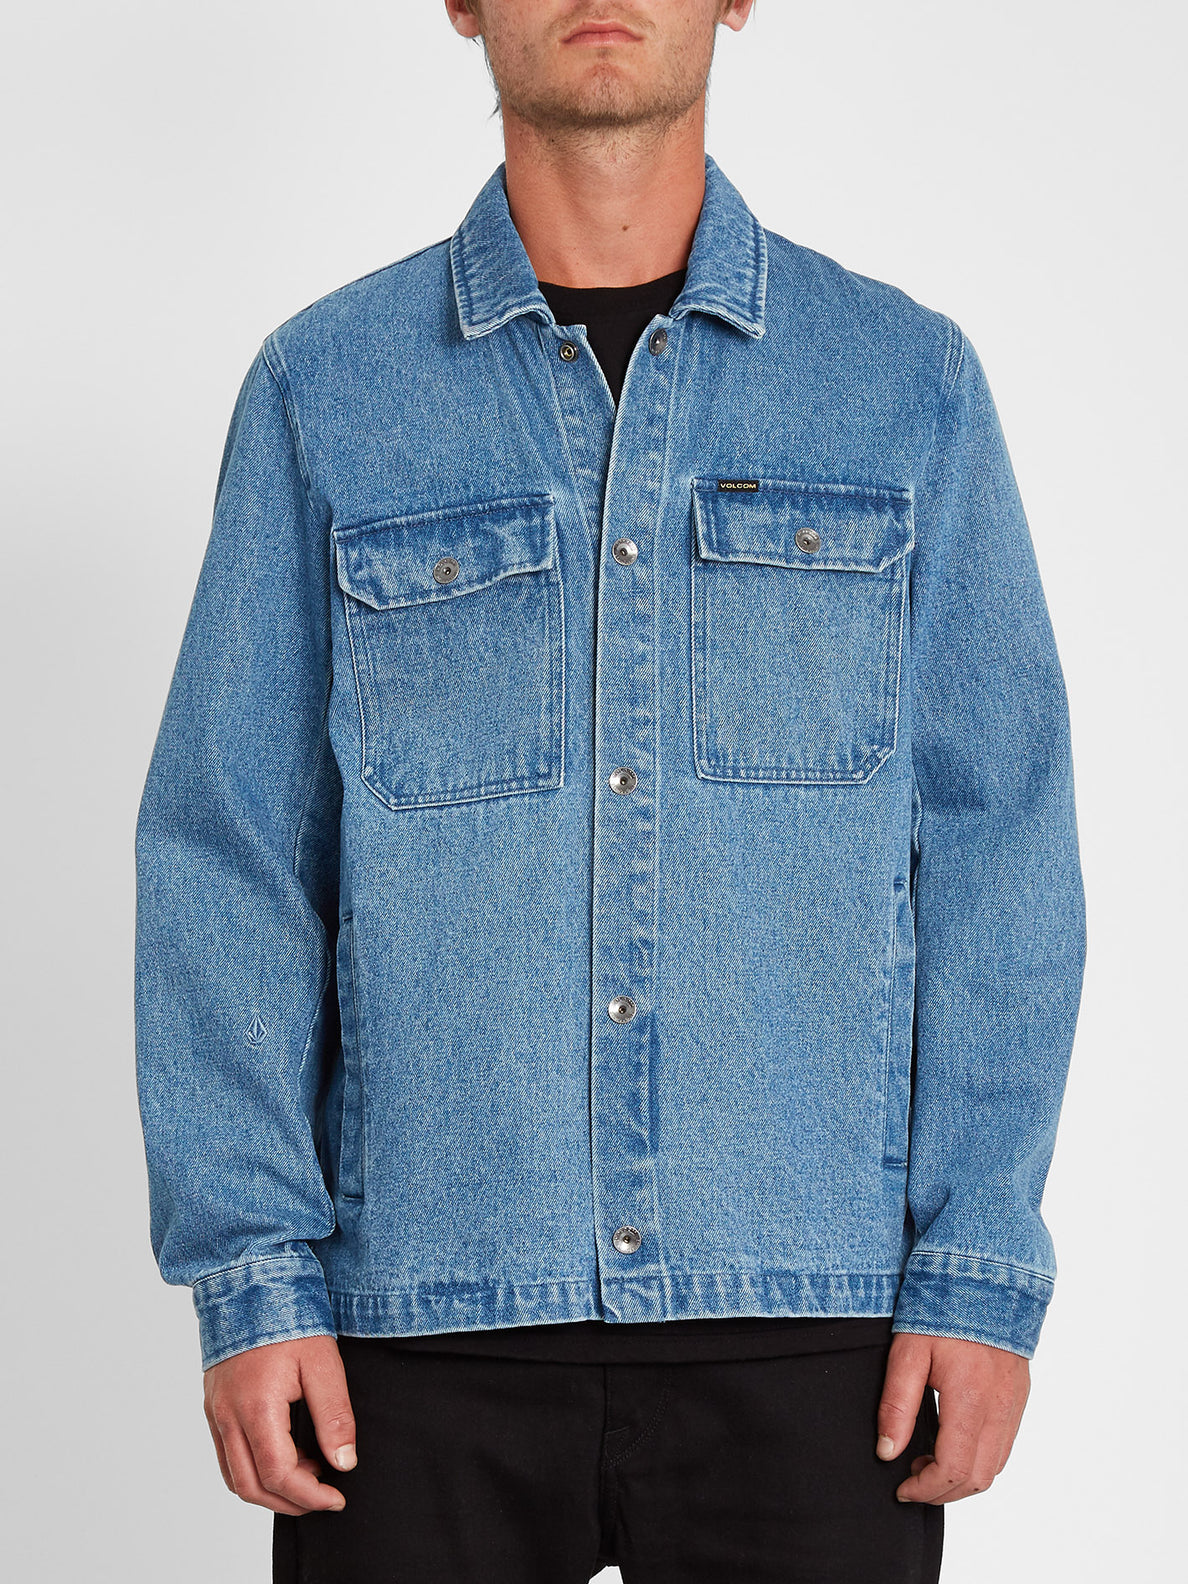 Likeaton Jacket - Denim (A1512105_DEN) [10]